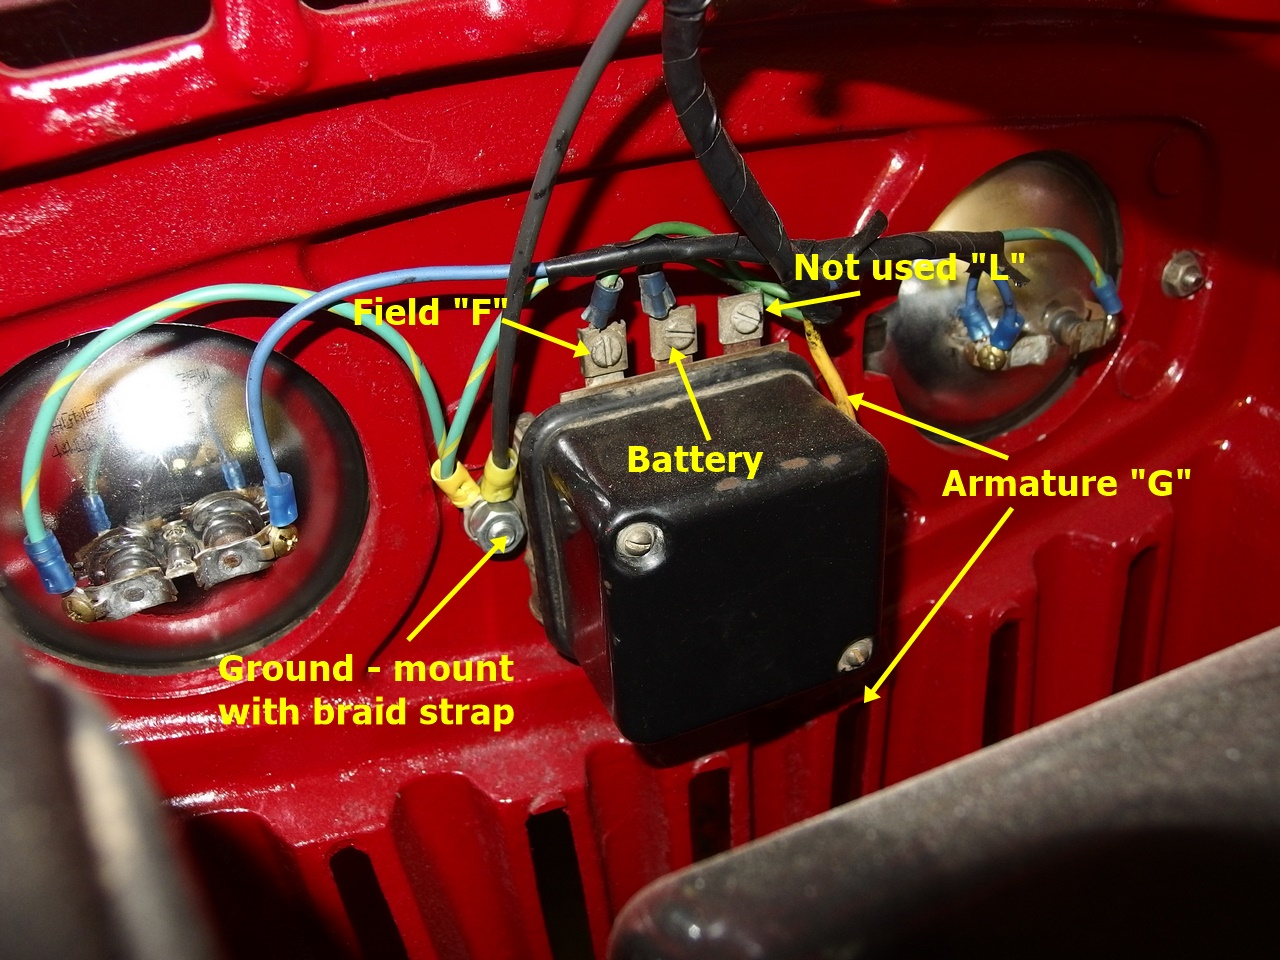 Need 990 wiring diagram - MyTractorForum.com - The ... Farm King Lawn Tractor Wiring Diagram on